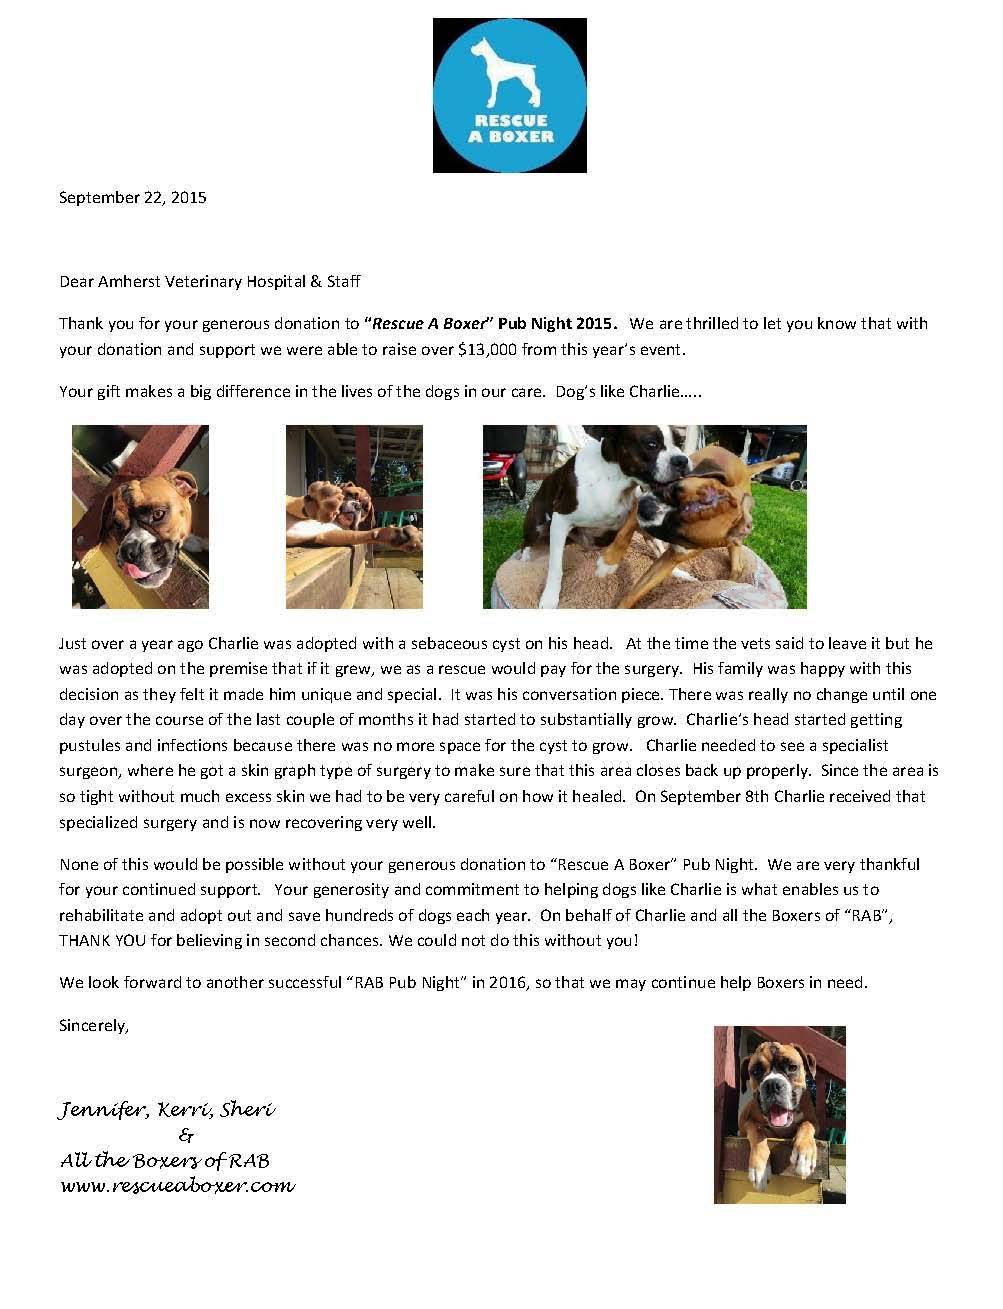 Rescue A Boxer Thank You Letter